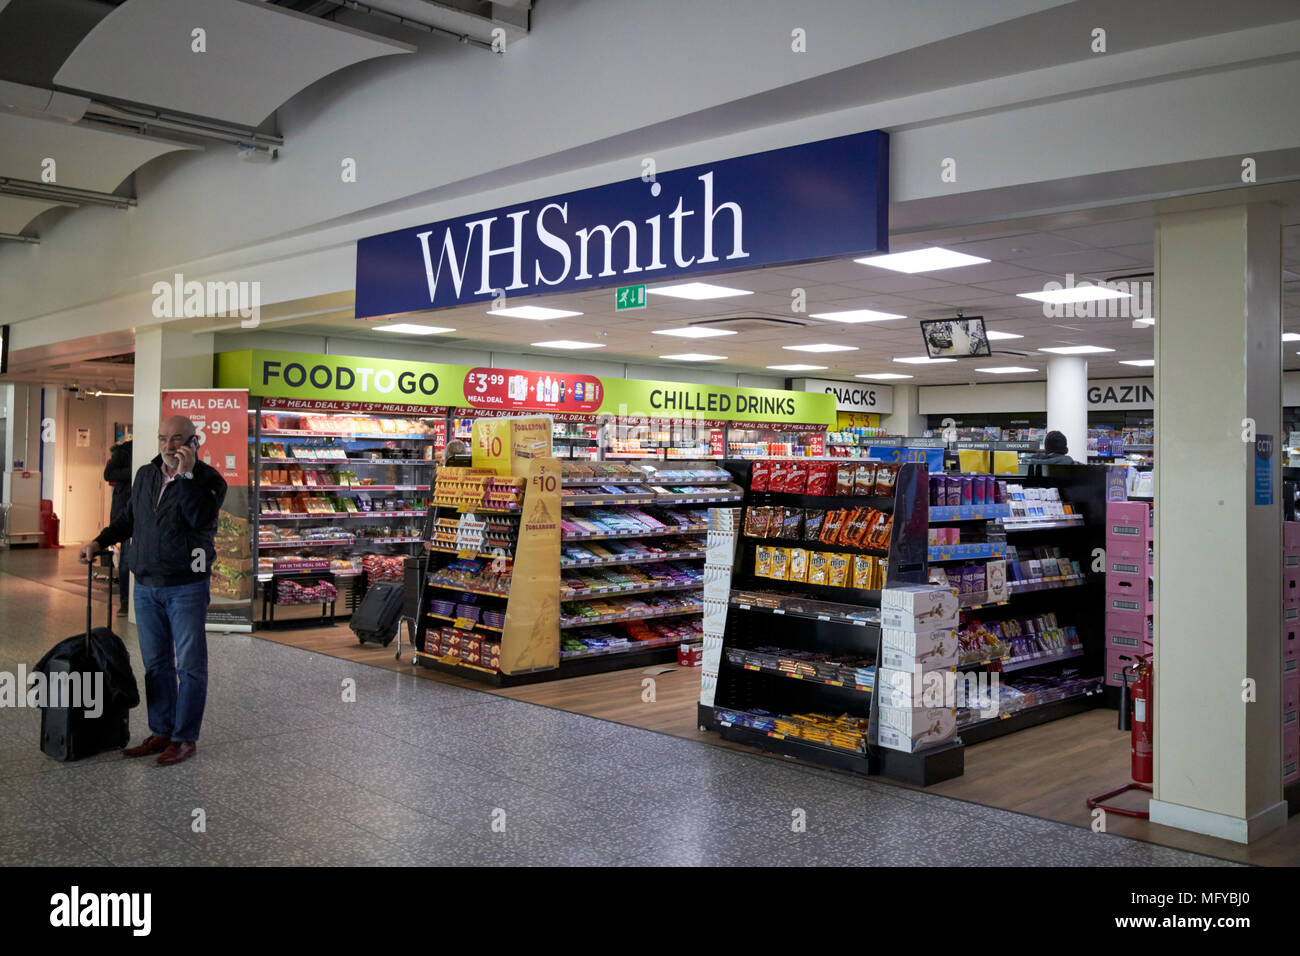 wh smith store in bristol airport england uk - Stock Image